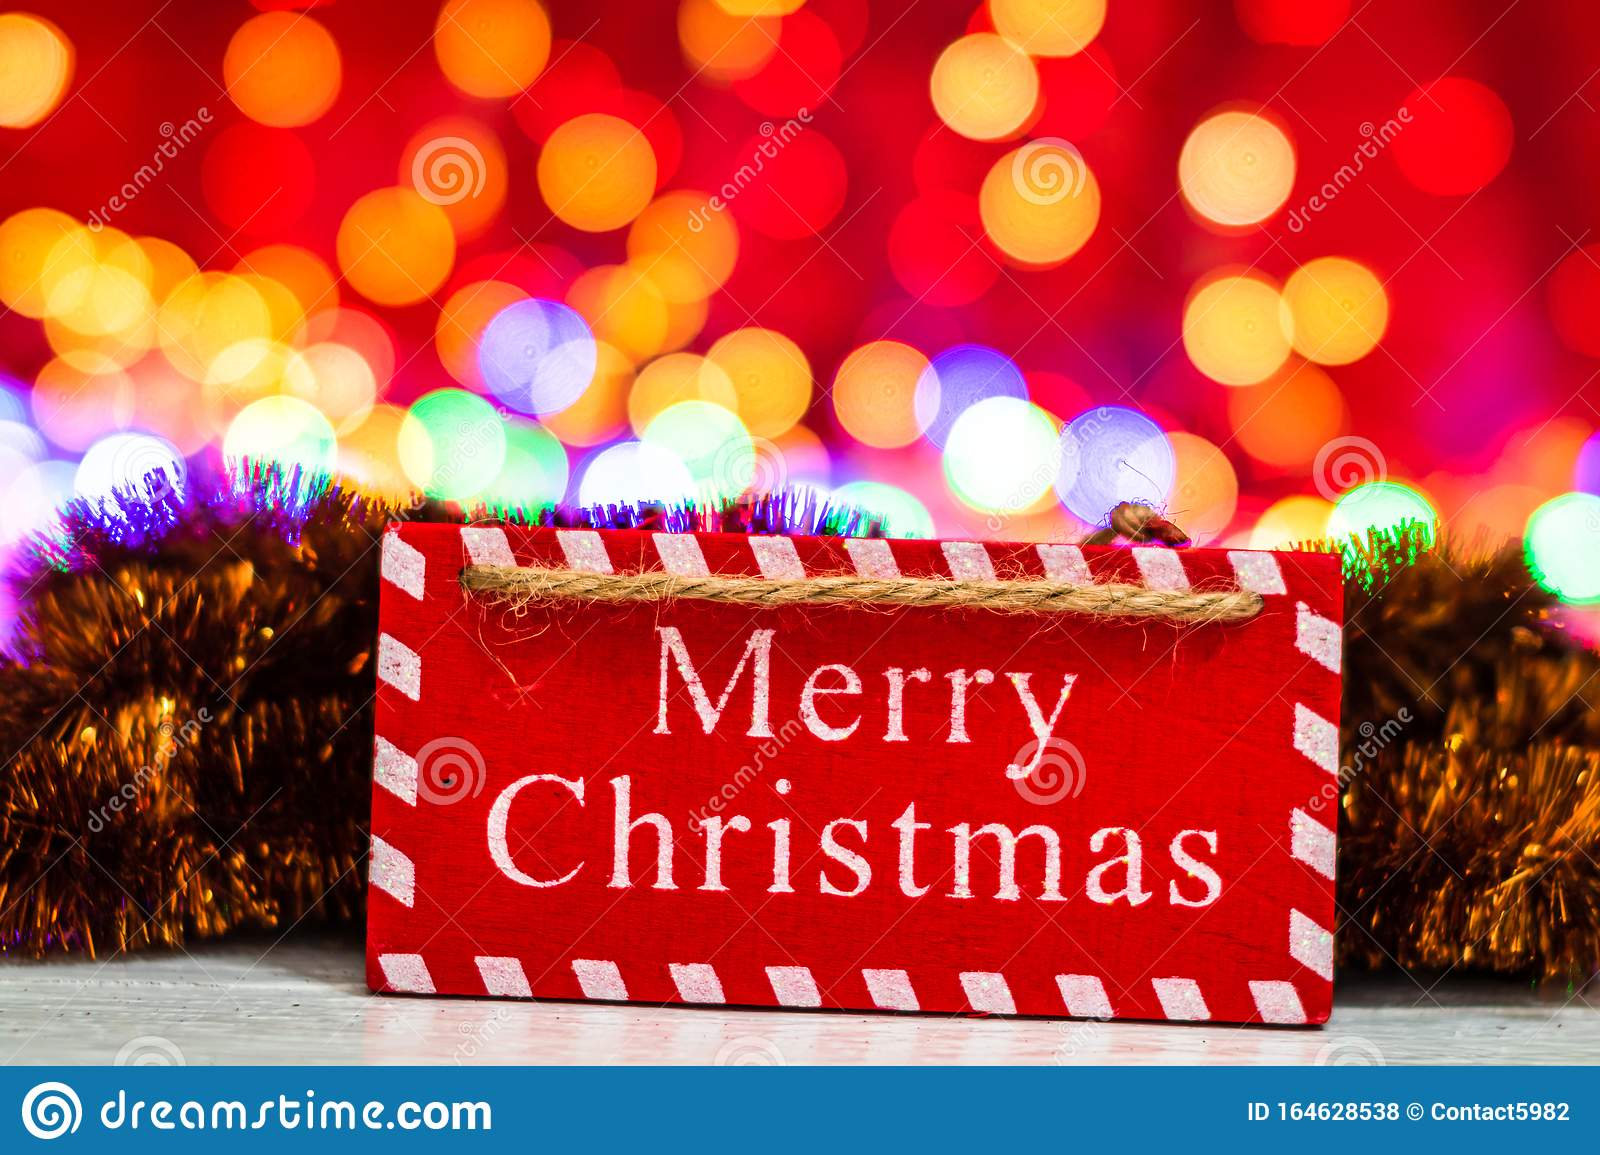 Merry Christmas wooden sign. Christmas composition on blurred lights background